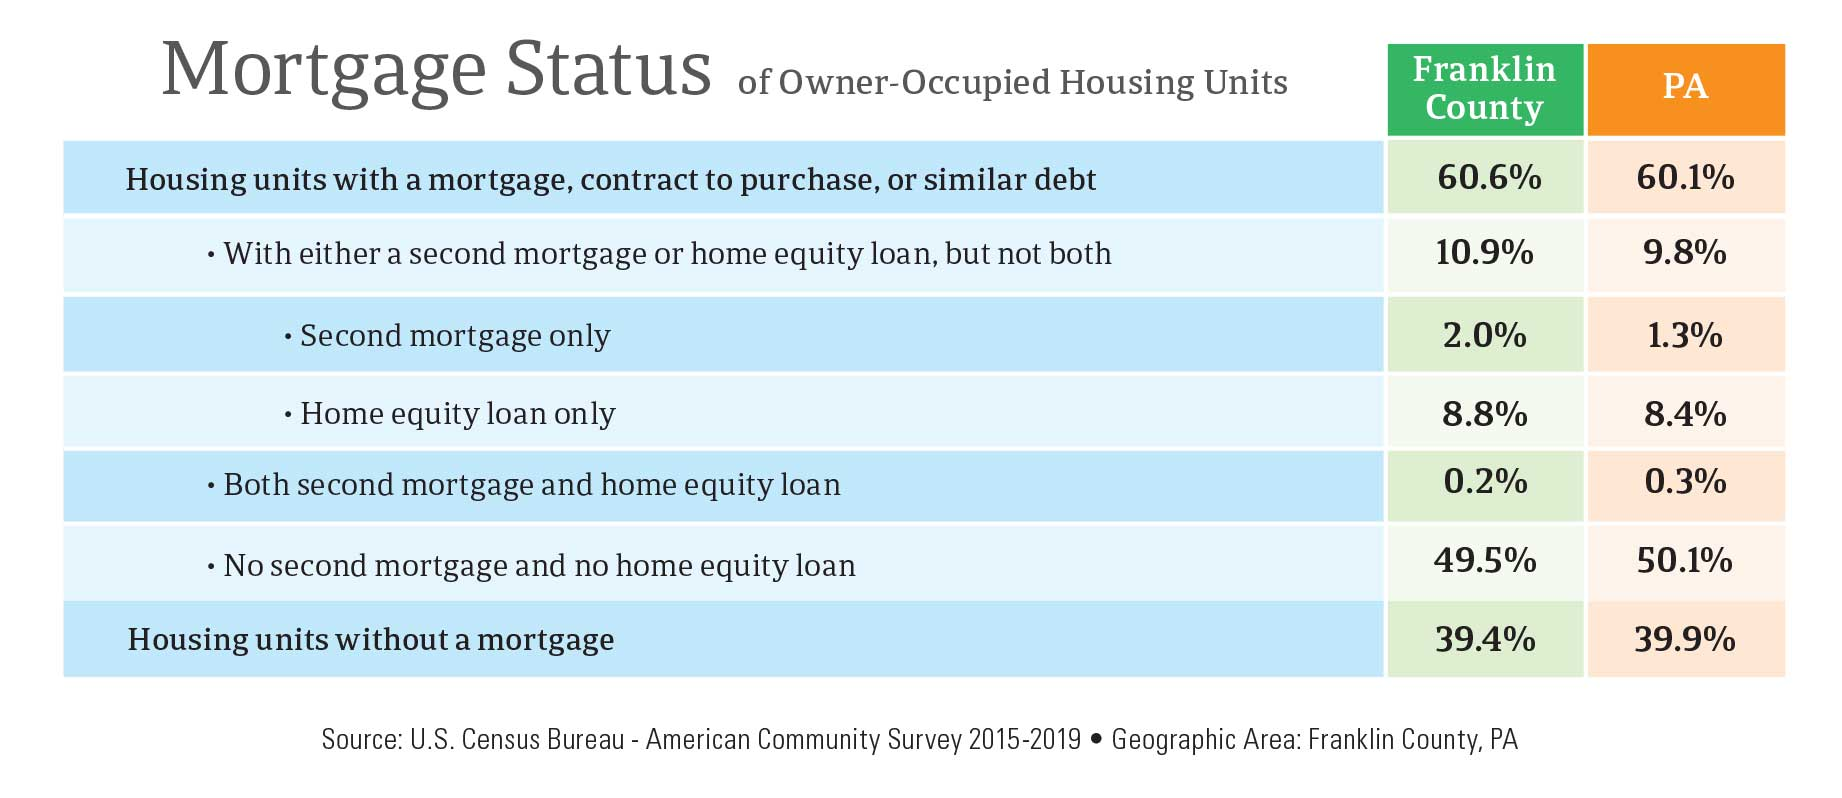 Mortgage Status of Owner-Occupied Housing Units